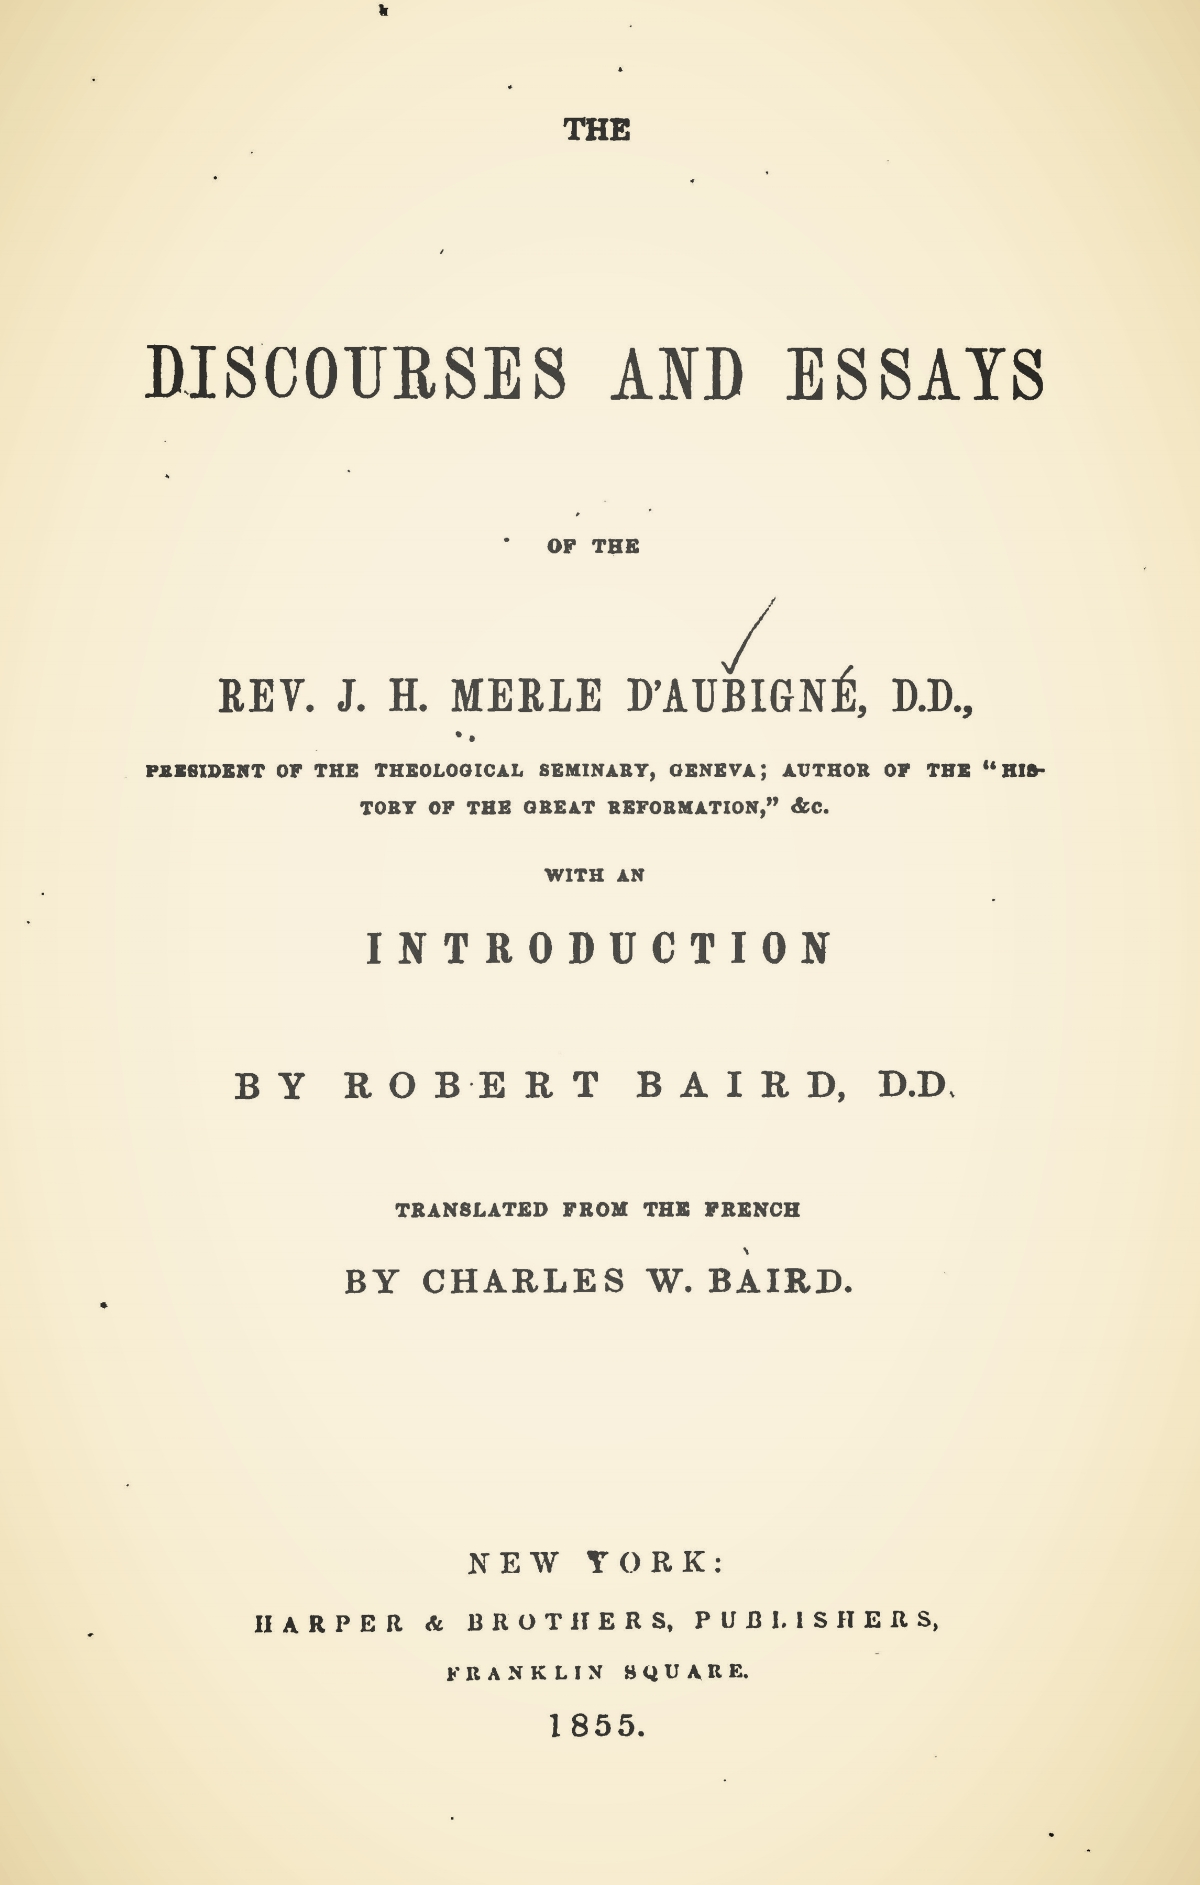 Baird, Charles Washington, The Discourses and Essays of the Rev. J.H. Merle d'Aubigne Title Page.jpg